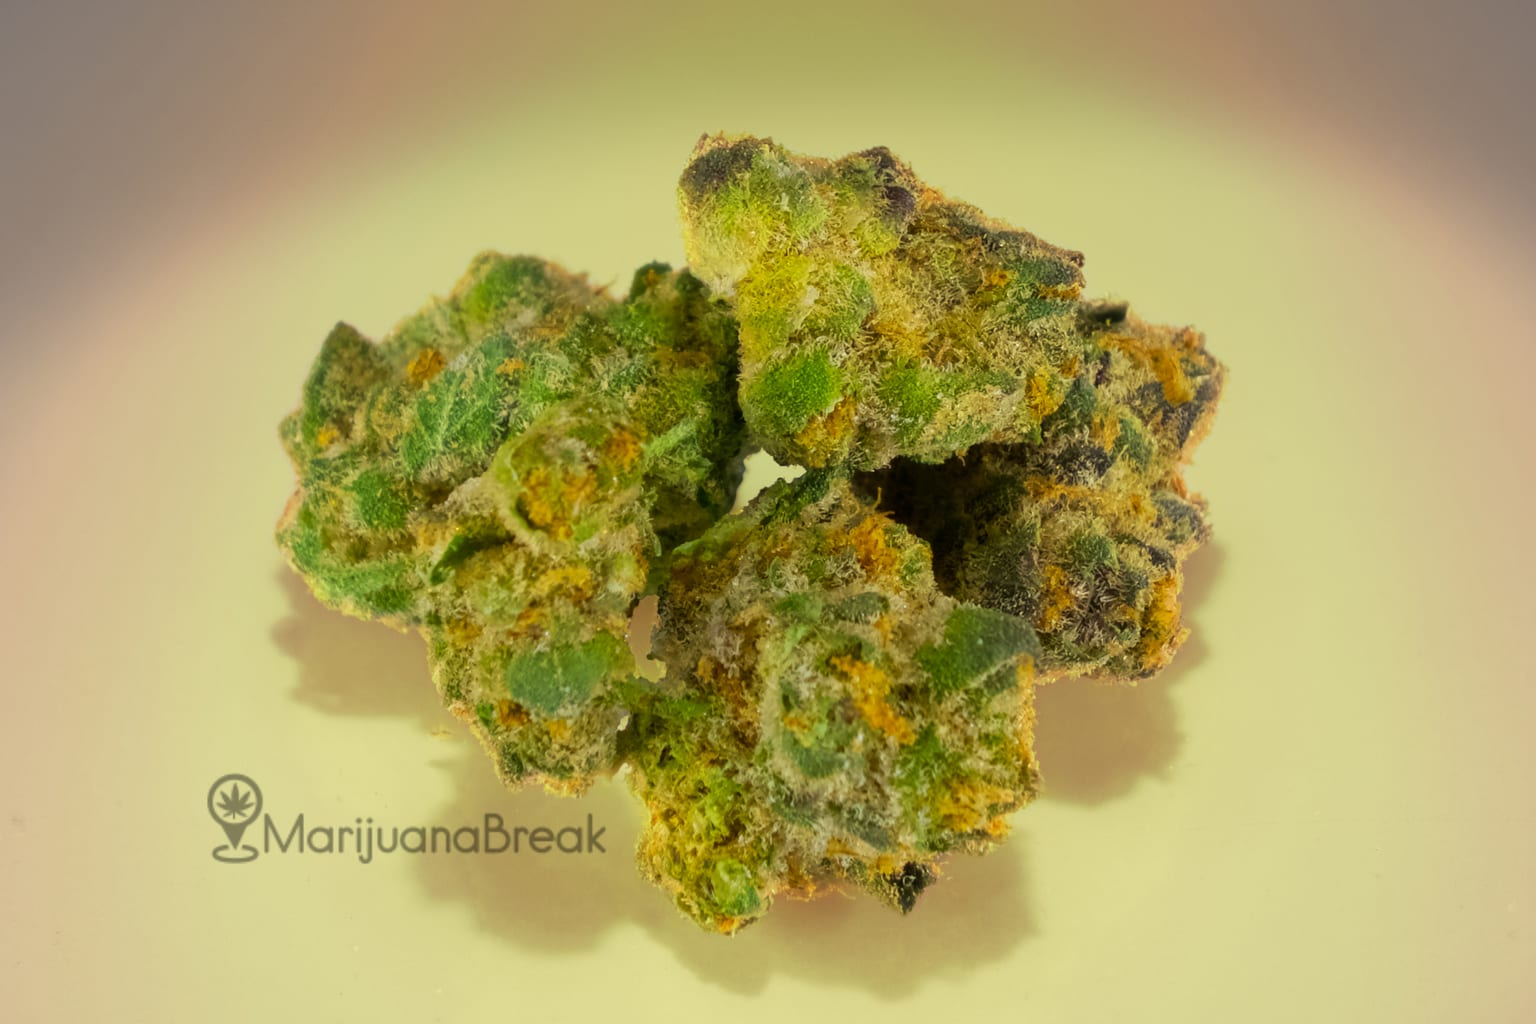 Girl Scout Cookies Strain (2018 Full Review)